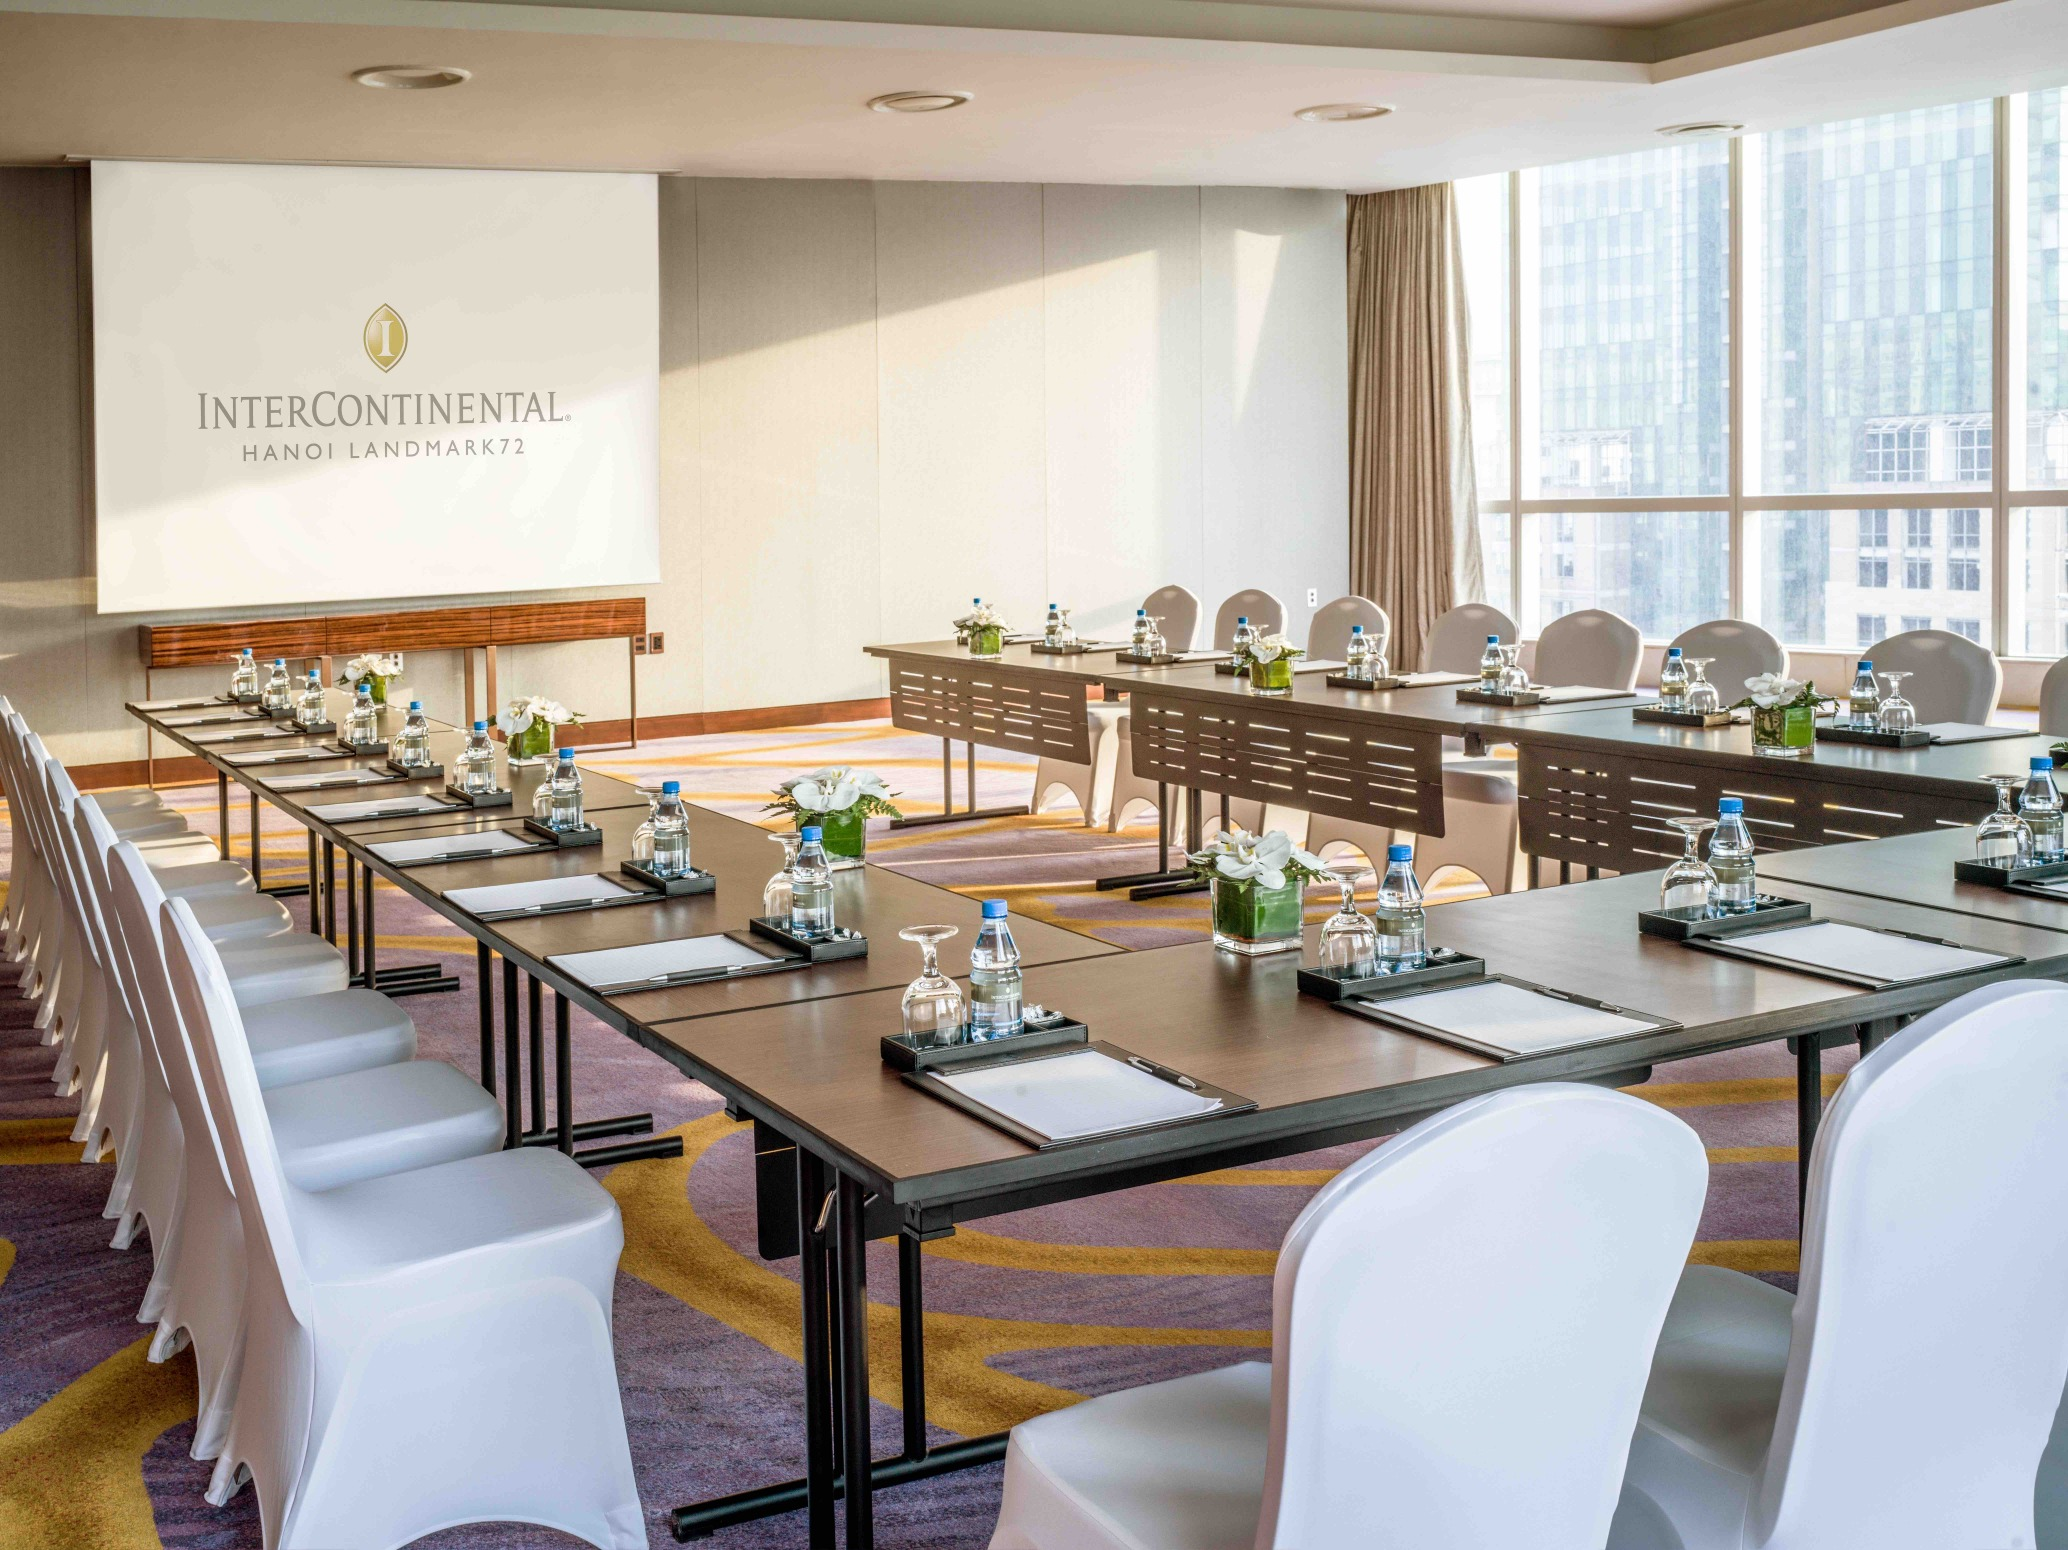 intercontinental hanoi meeting event conference location near ncc vietnam national convention center